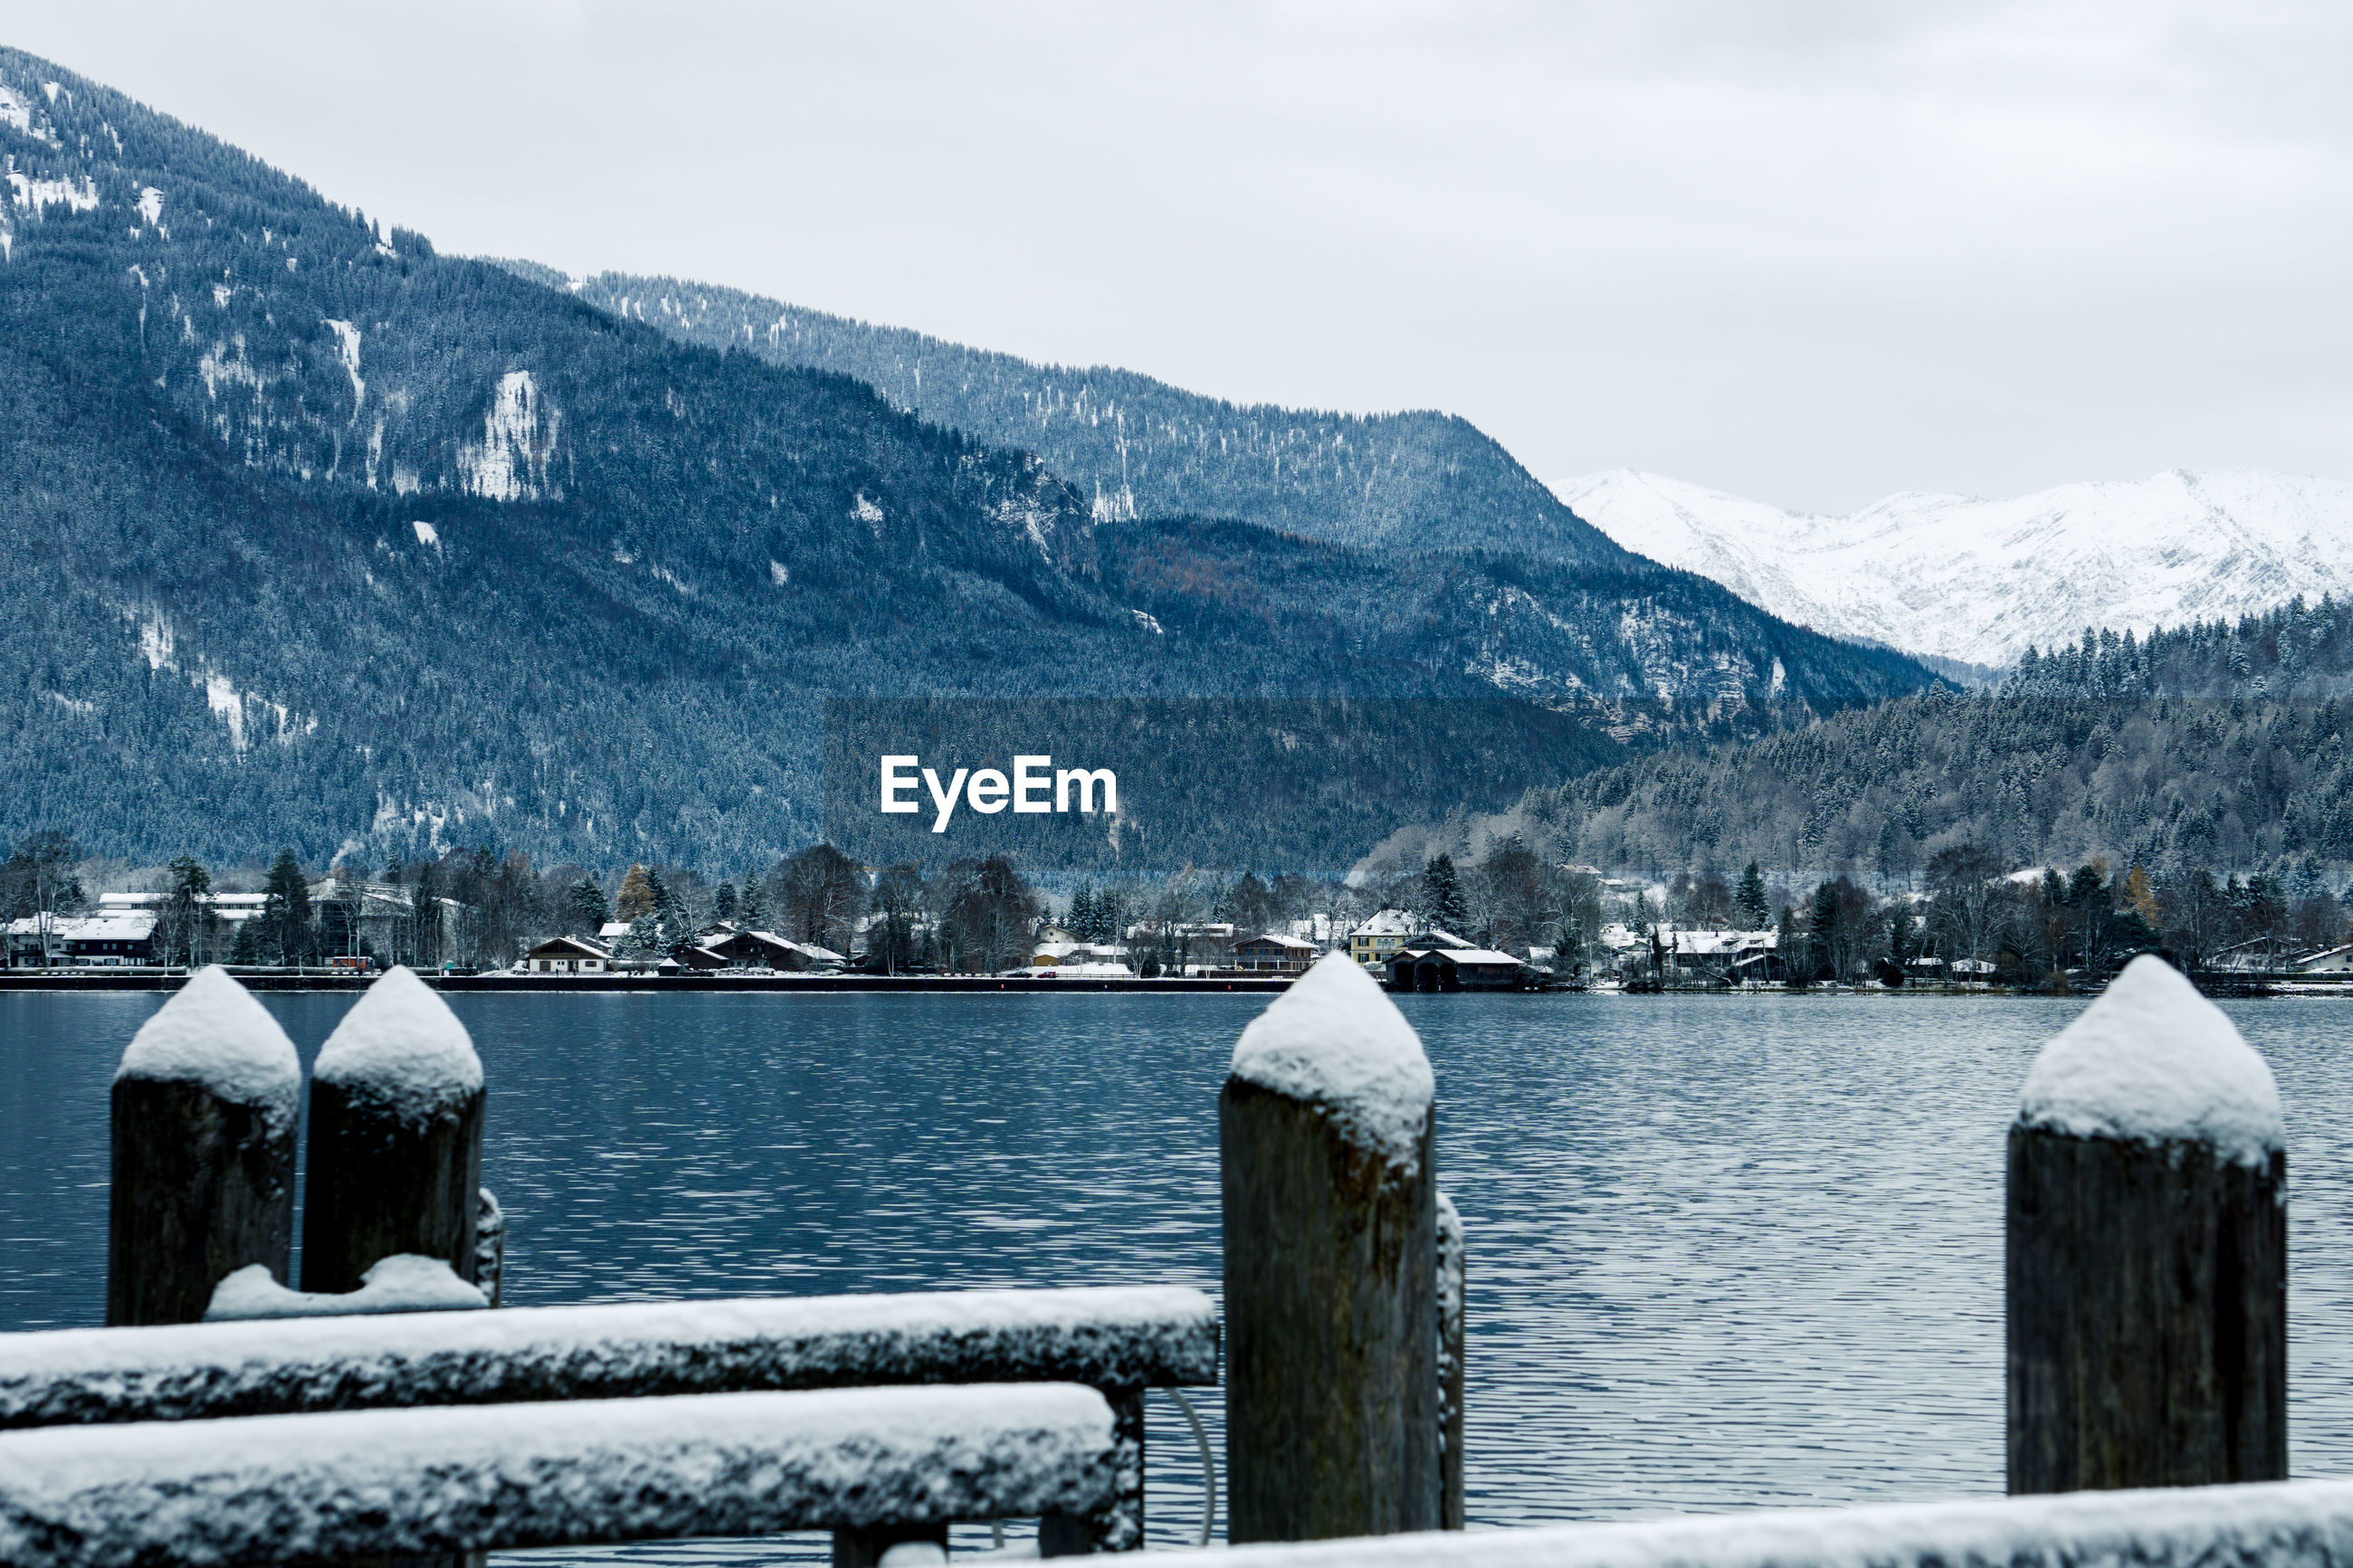 SCENIC VIEW OF FROZEN LAKE AGAINST MOUNTAIN